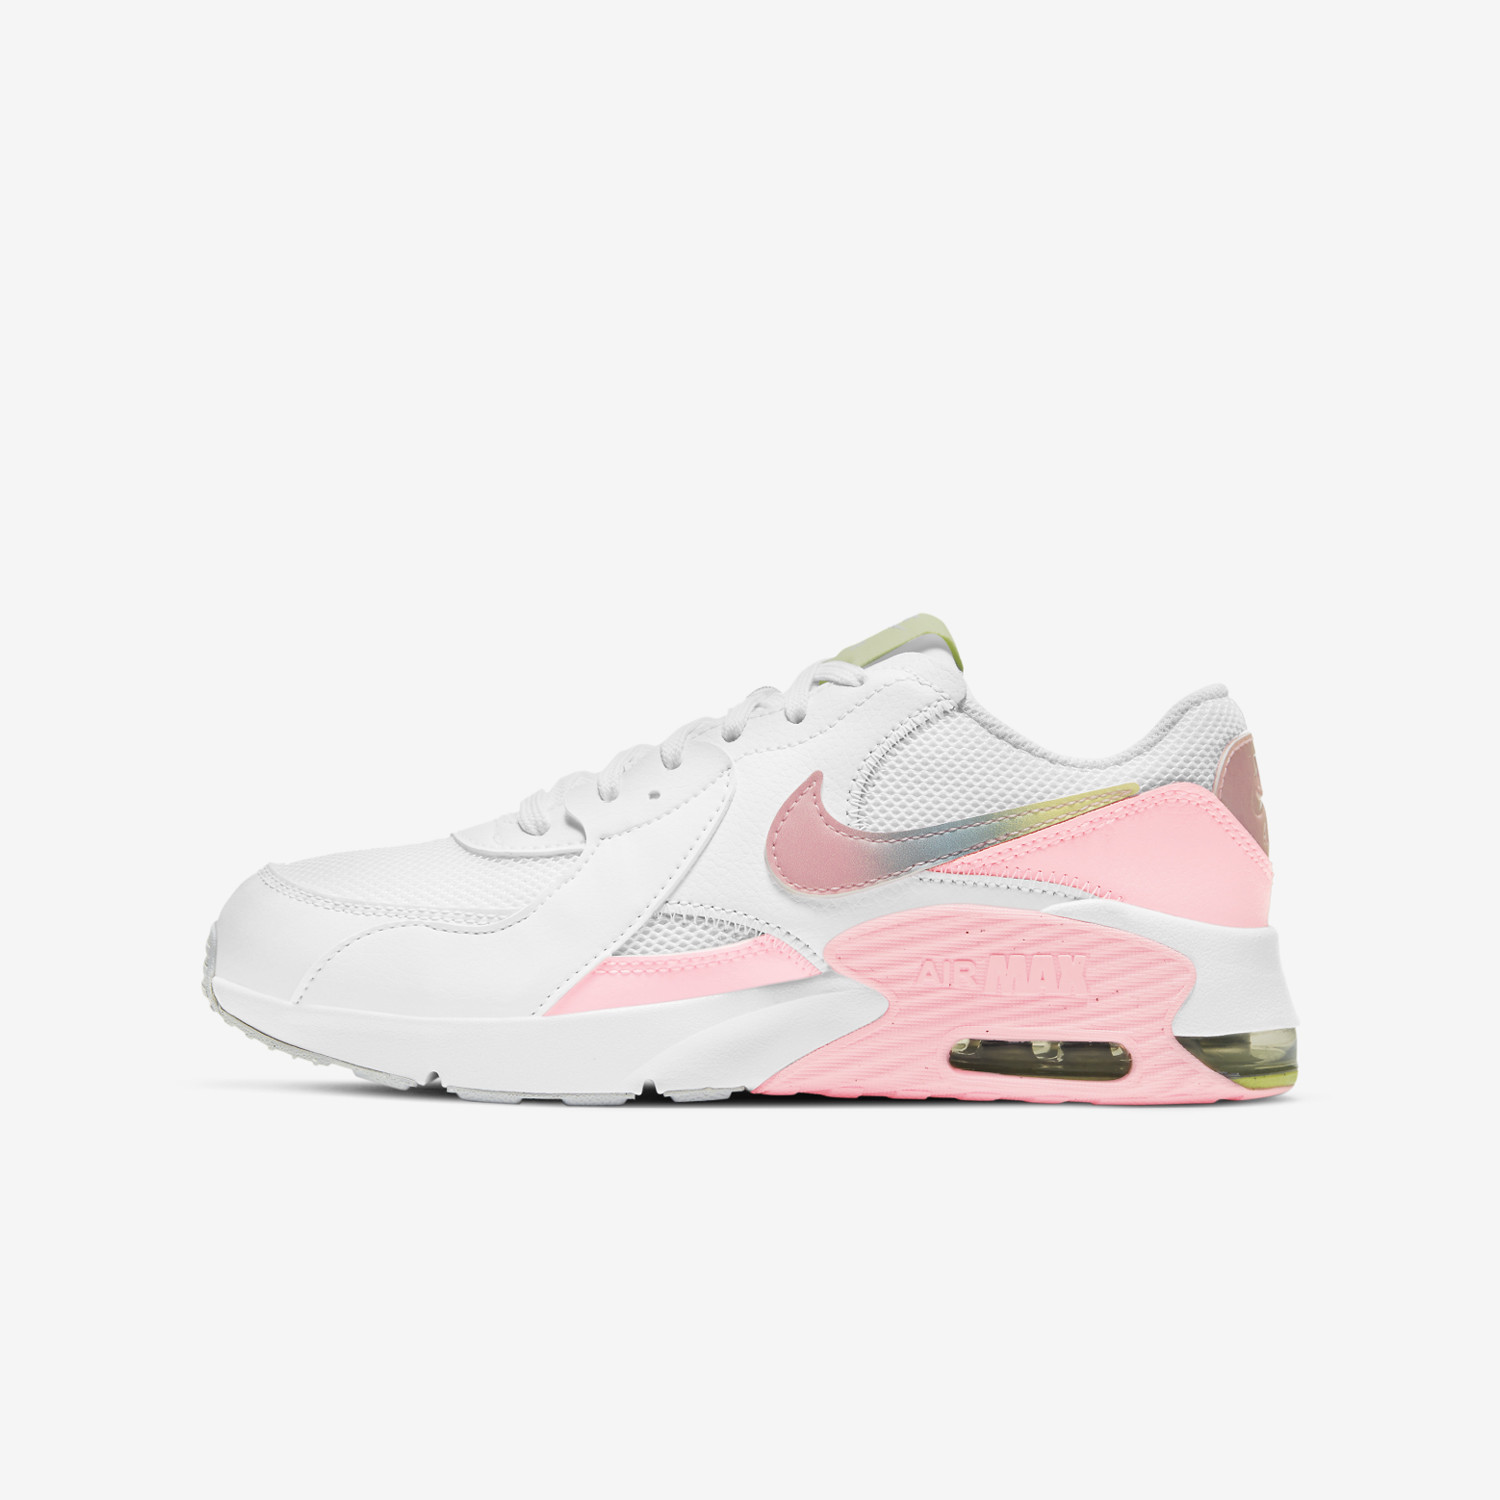 Nike Air Max Excee Mwh (Gs) WHITE/MULTI-COLOR-PURE PLATINUM CW5829-100